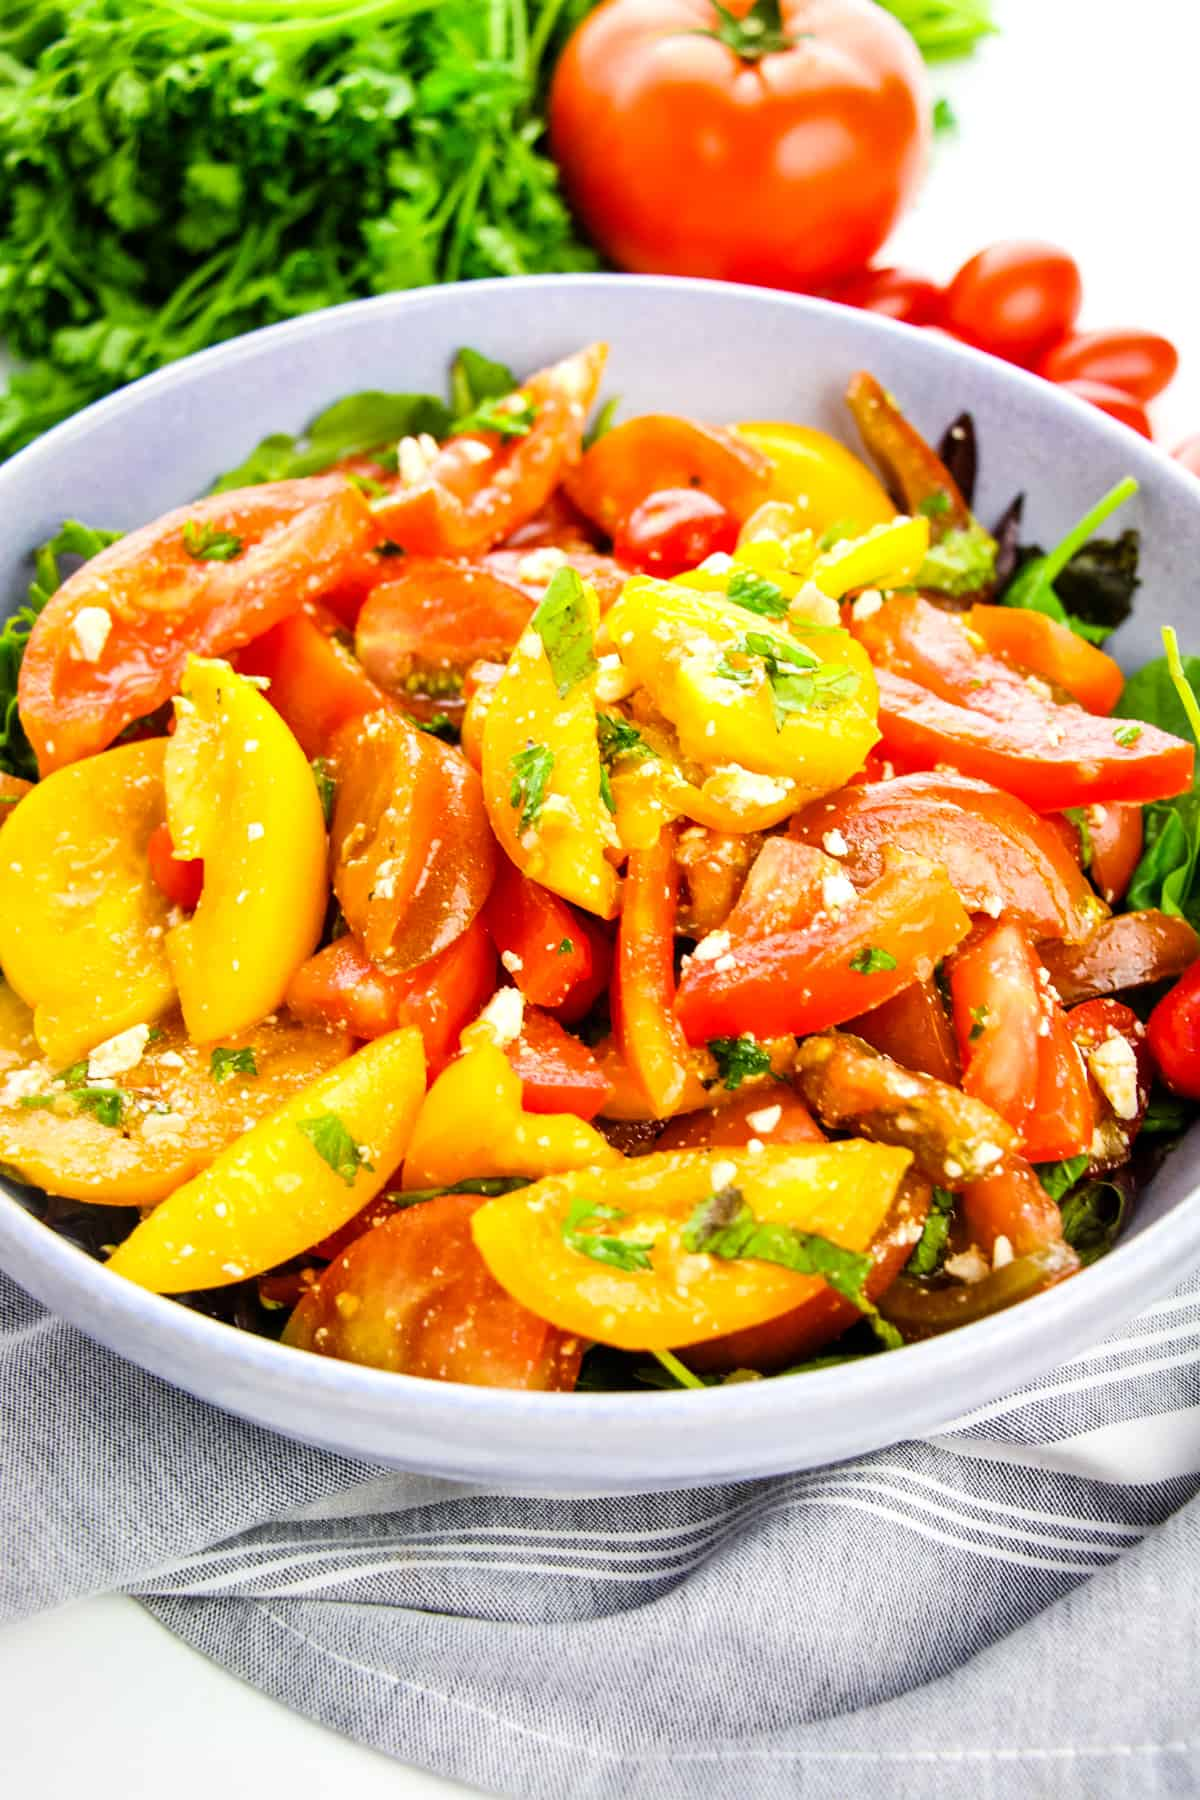 Heirloom Tomato Salad served in large grey bowl on bed of lettuce with parsley and tomatoes in background